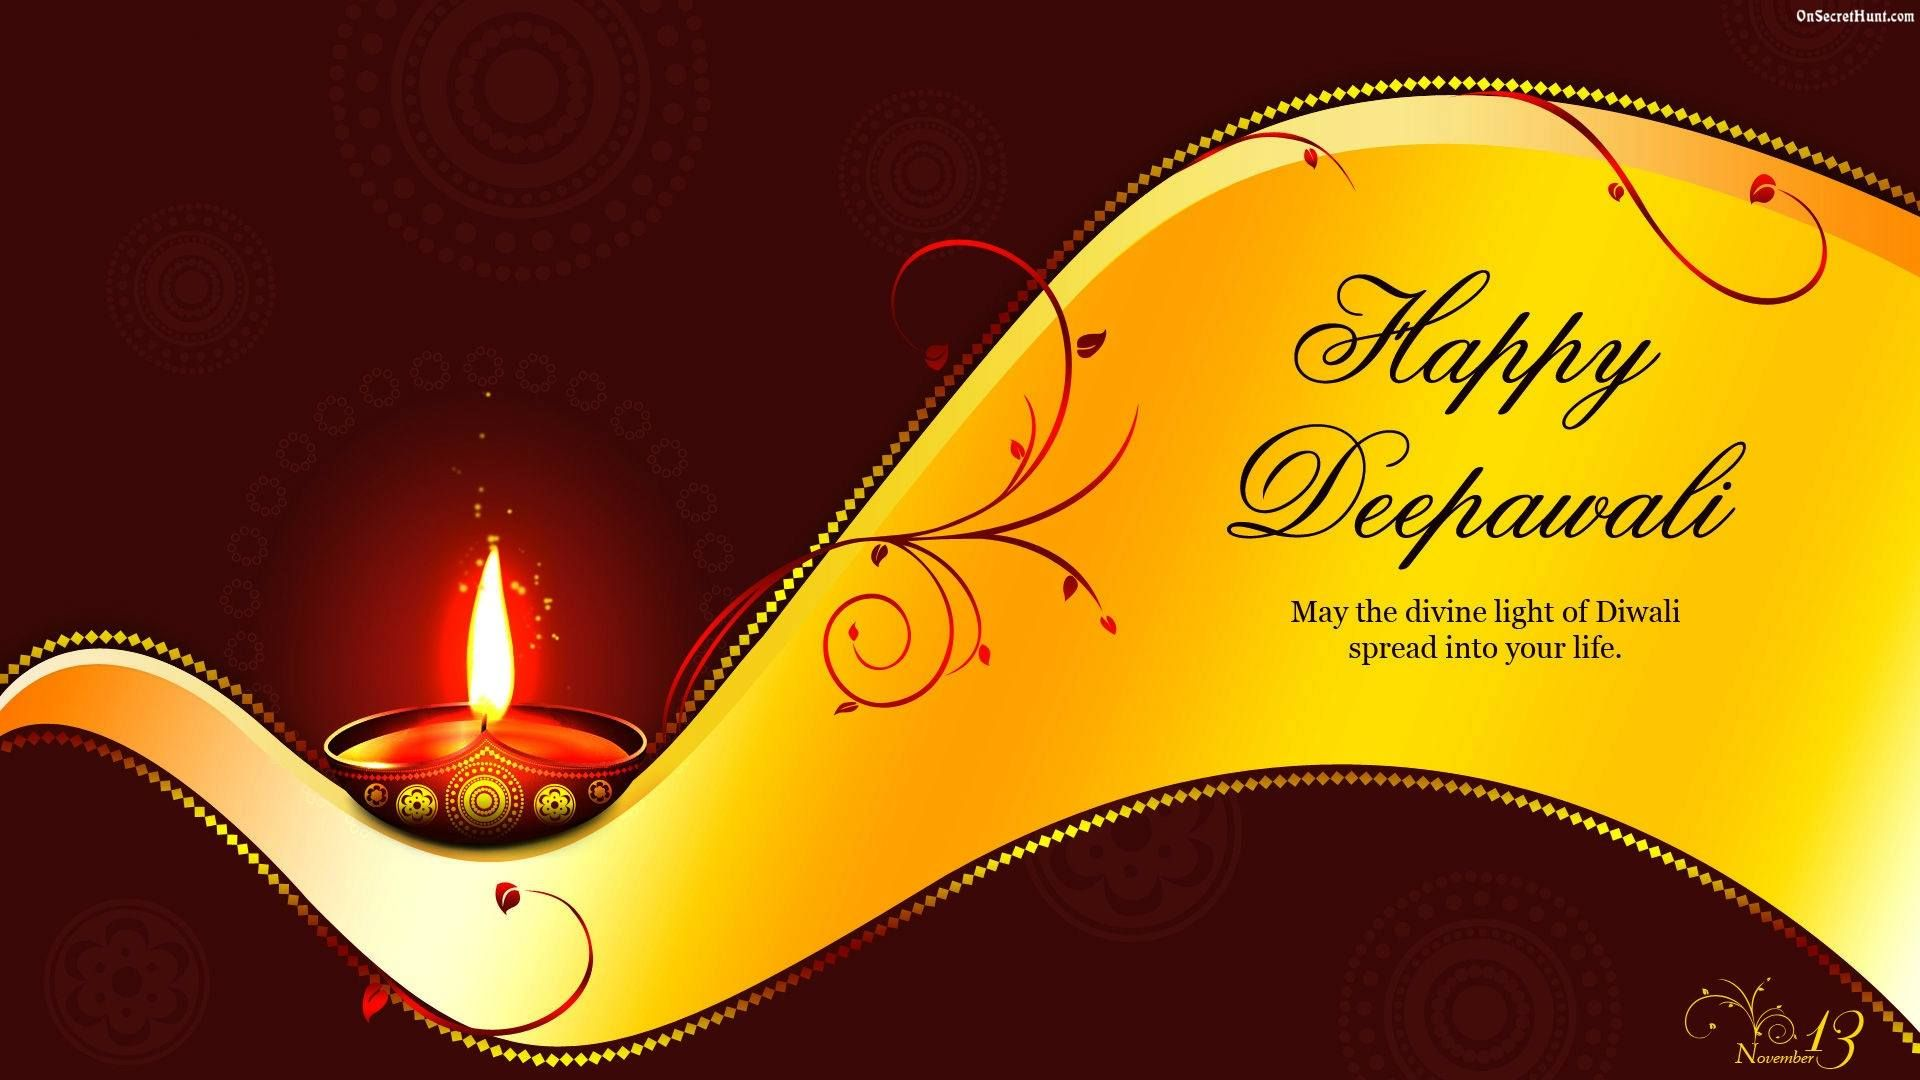 Download free dhanteras images httphappydiwali2u download free dhanteras images httphappydiwali2udownload free dhanteras images happy diwali image photo picture message sms pinterest kristyandbryce Image collections